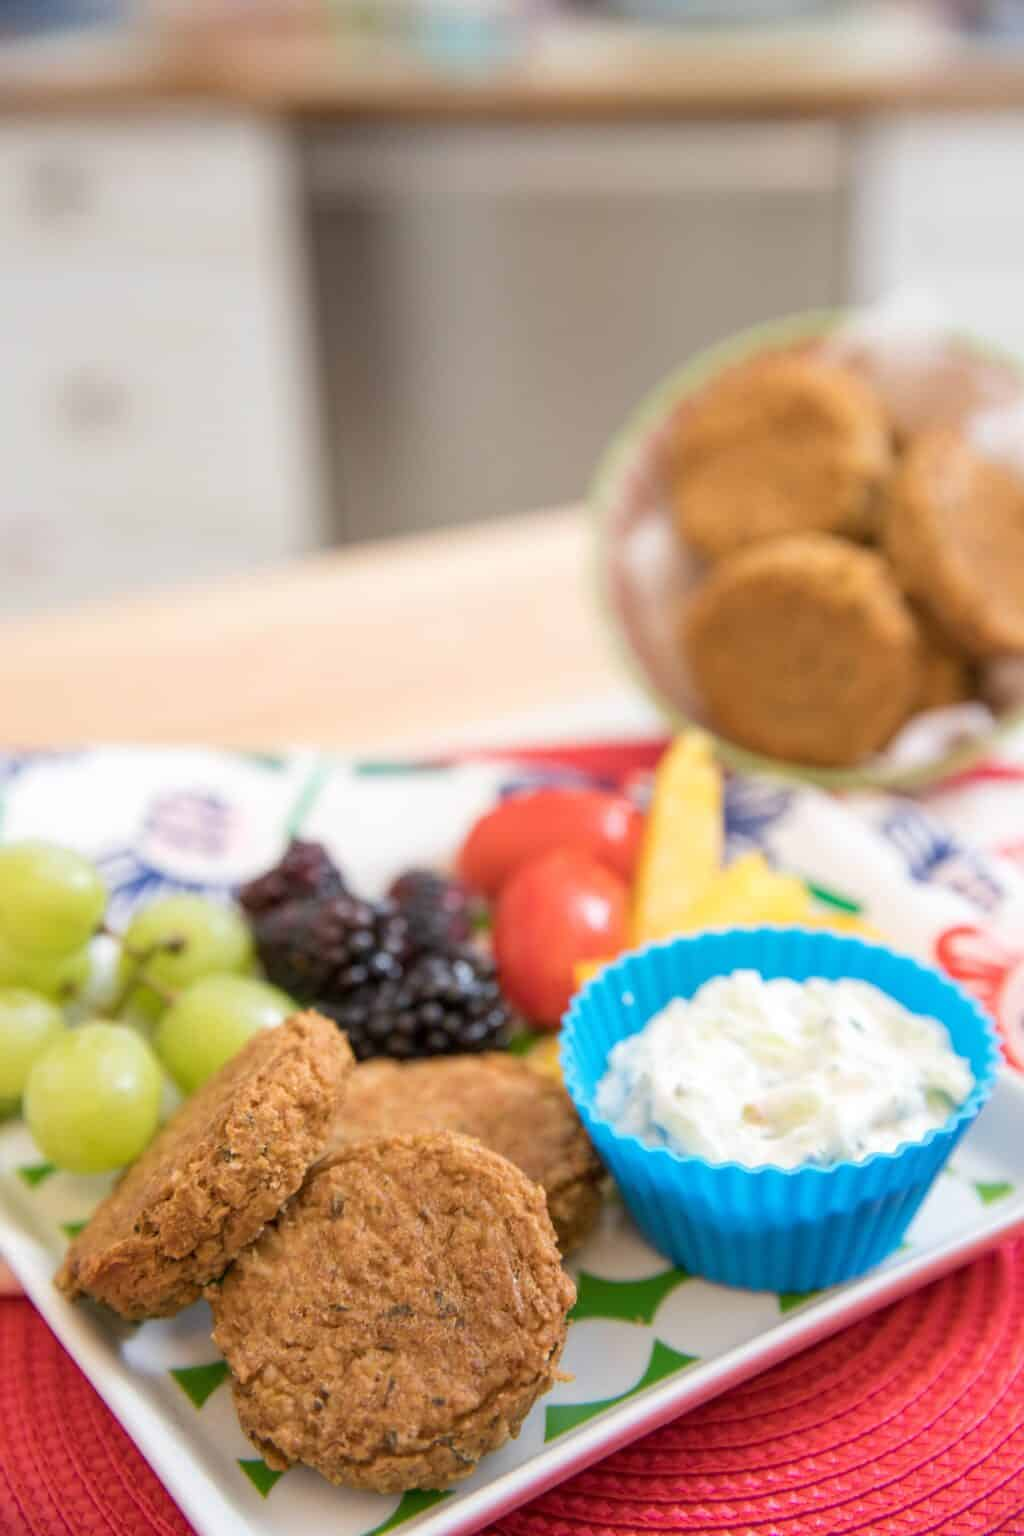 vegan lentil nuggets served with dip and a plate of fruits and vegetables